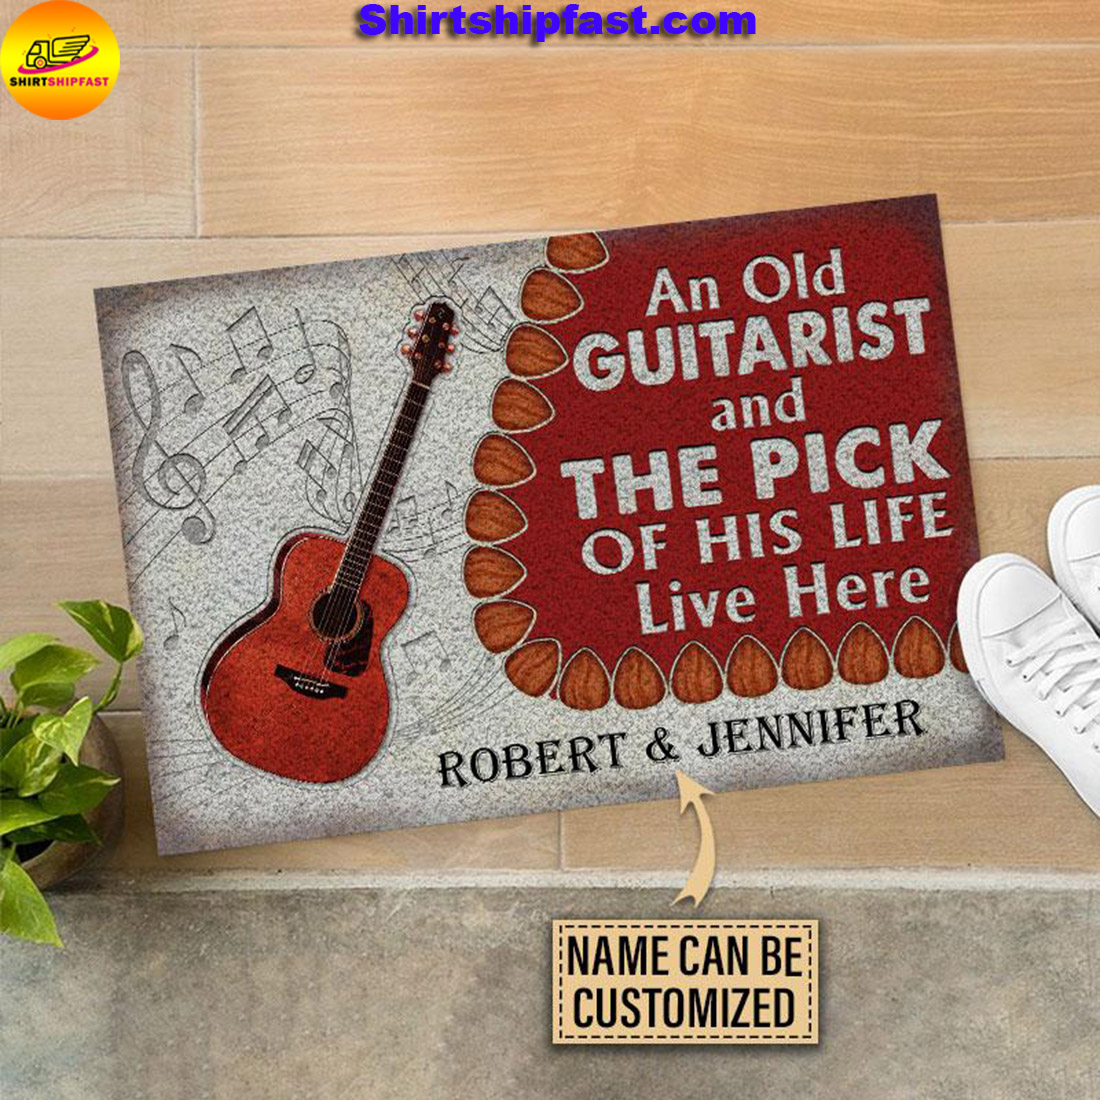 An old guitarist and the pick of his life live here custom name doormat - Picture 1